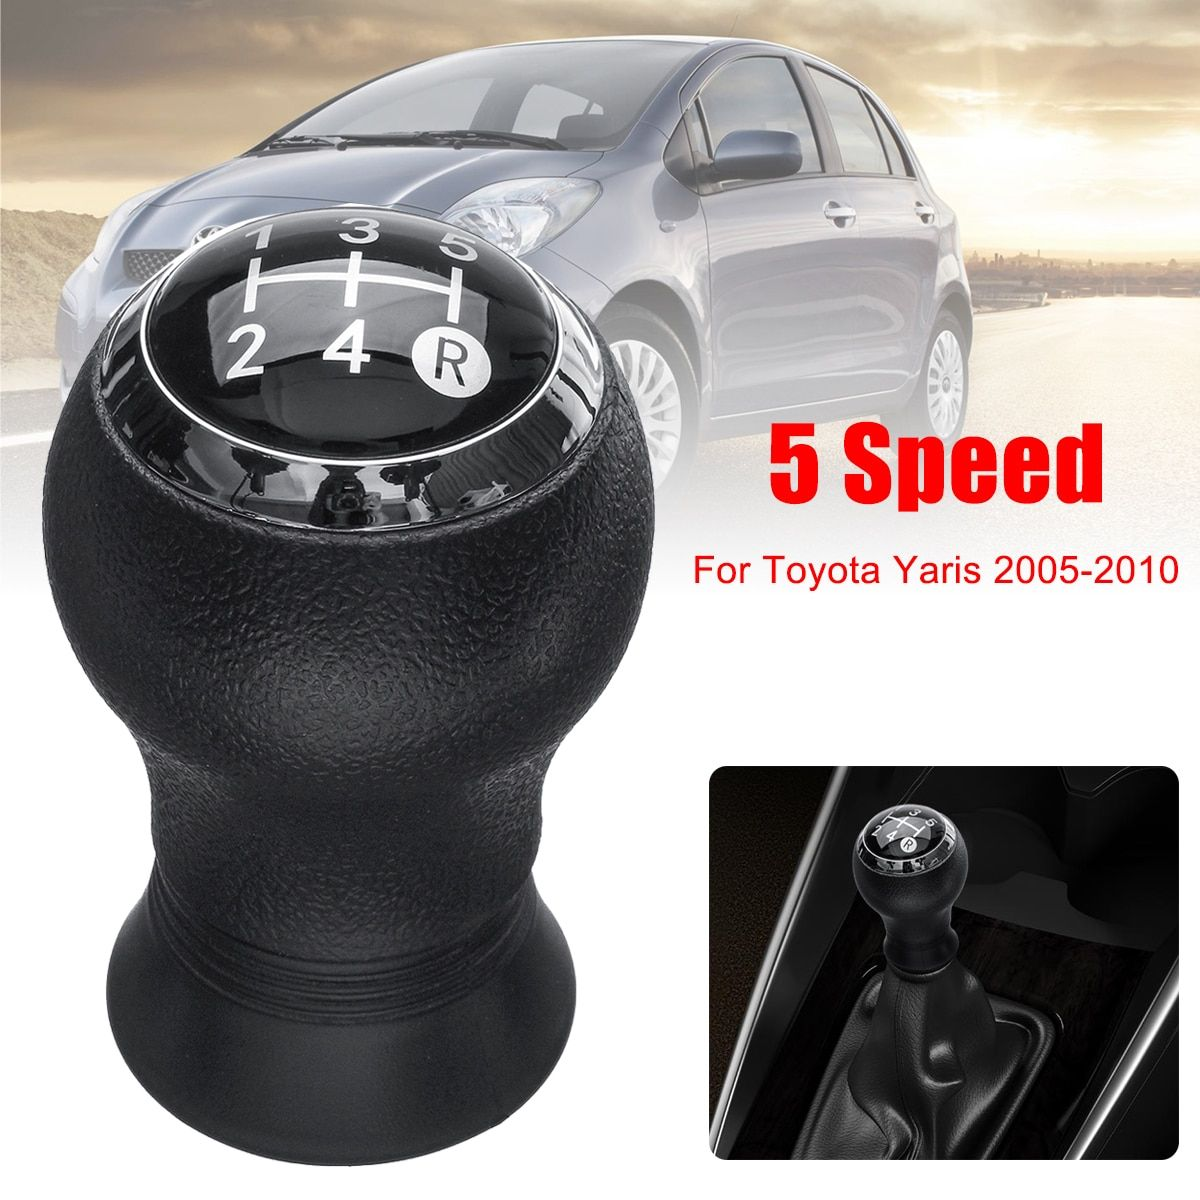 5 Speed MT Car Gear Shift Knob Head Gear Knob Cover Shifter Lever Stick For Toyota Yaris 2005-2010